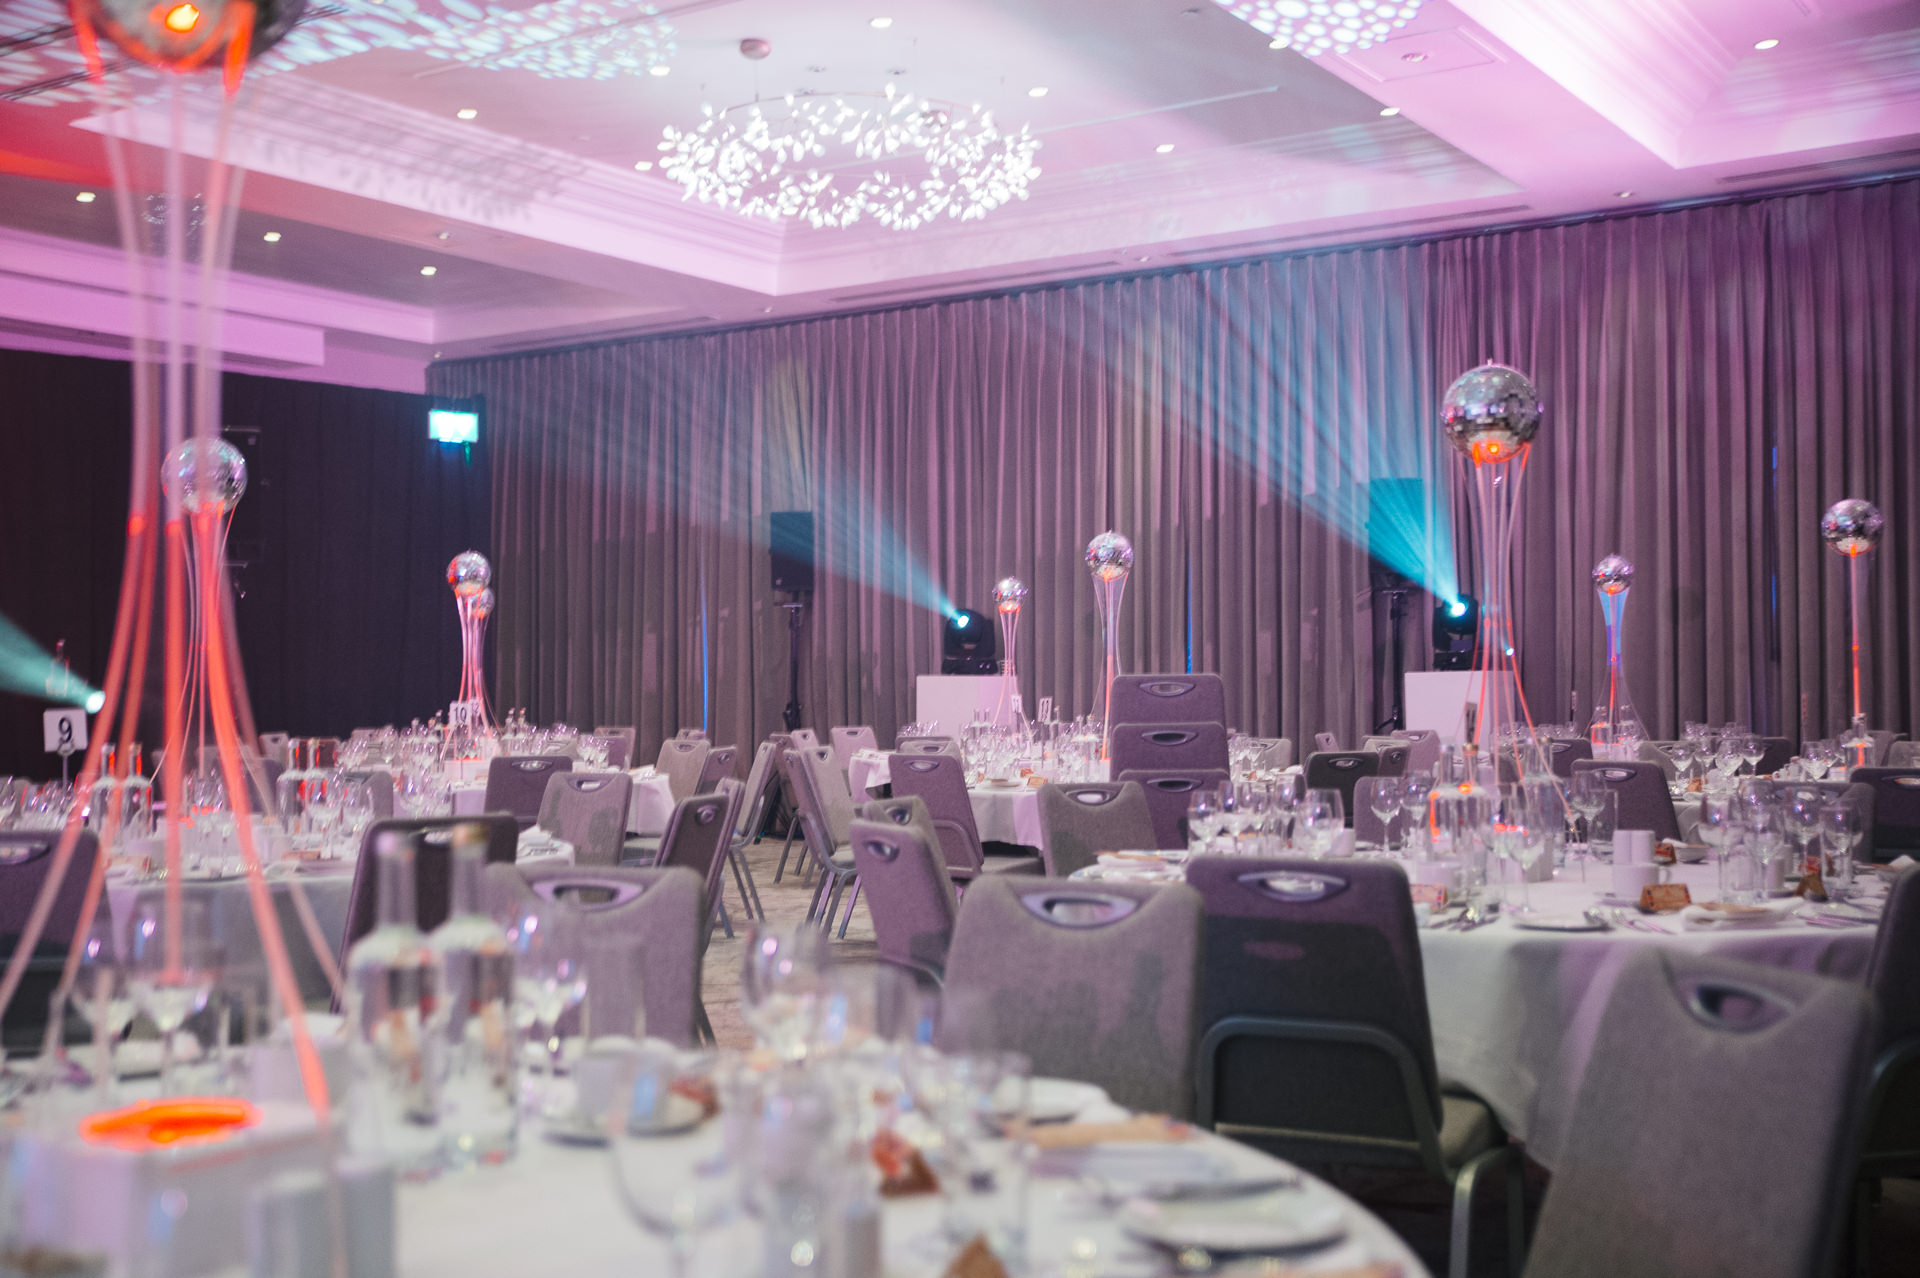 marriot hotel london regents park tables set up